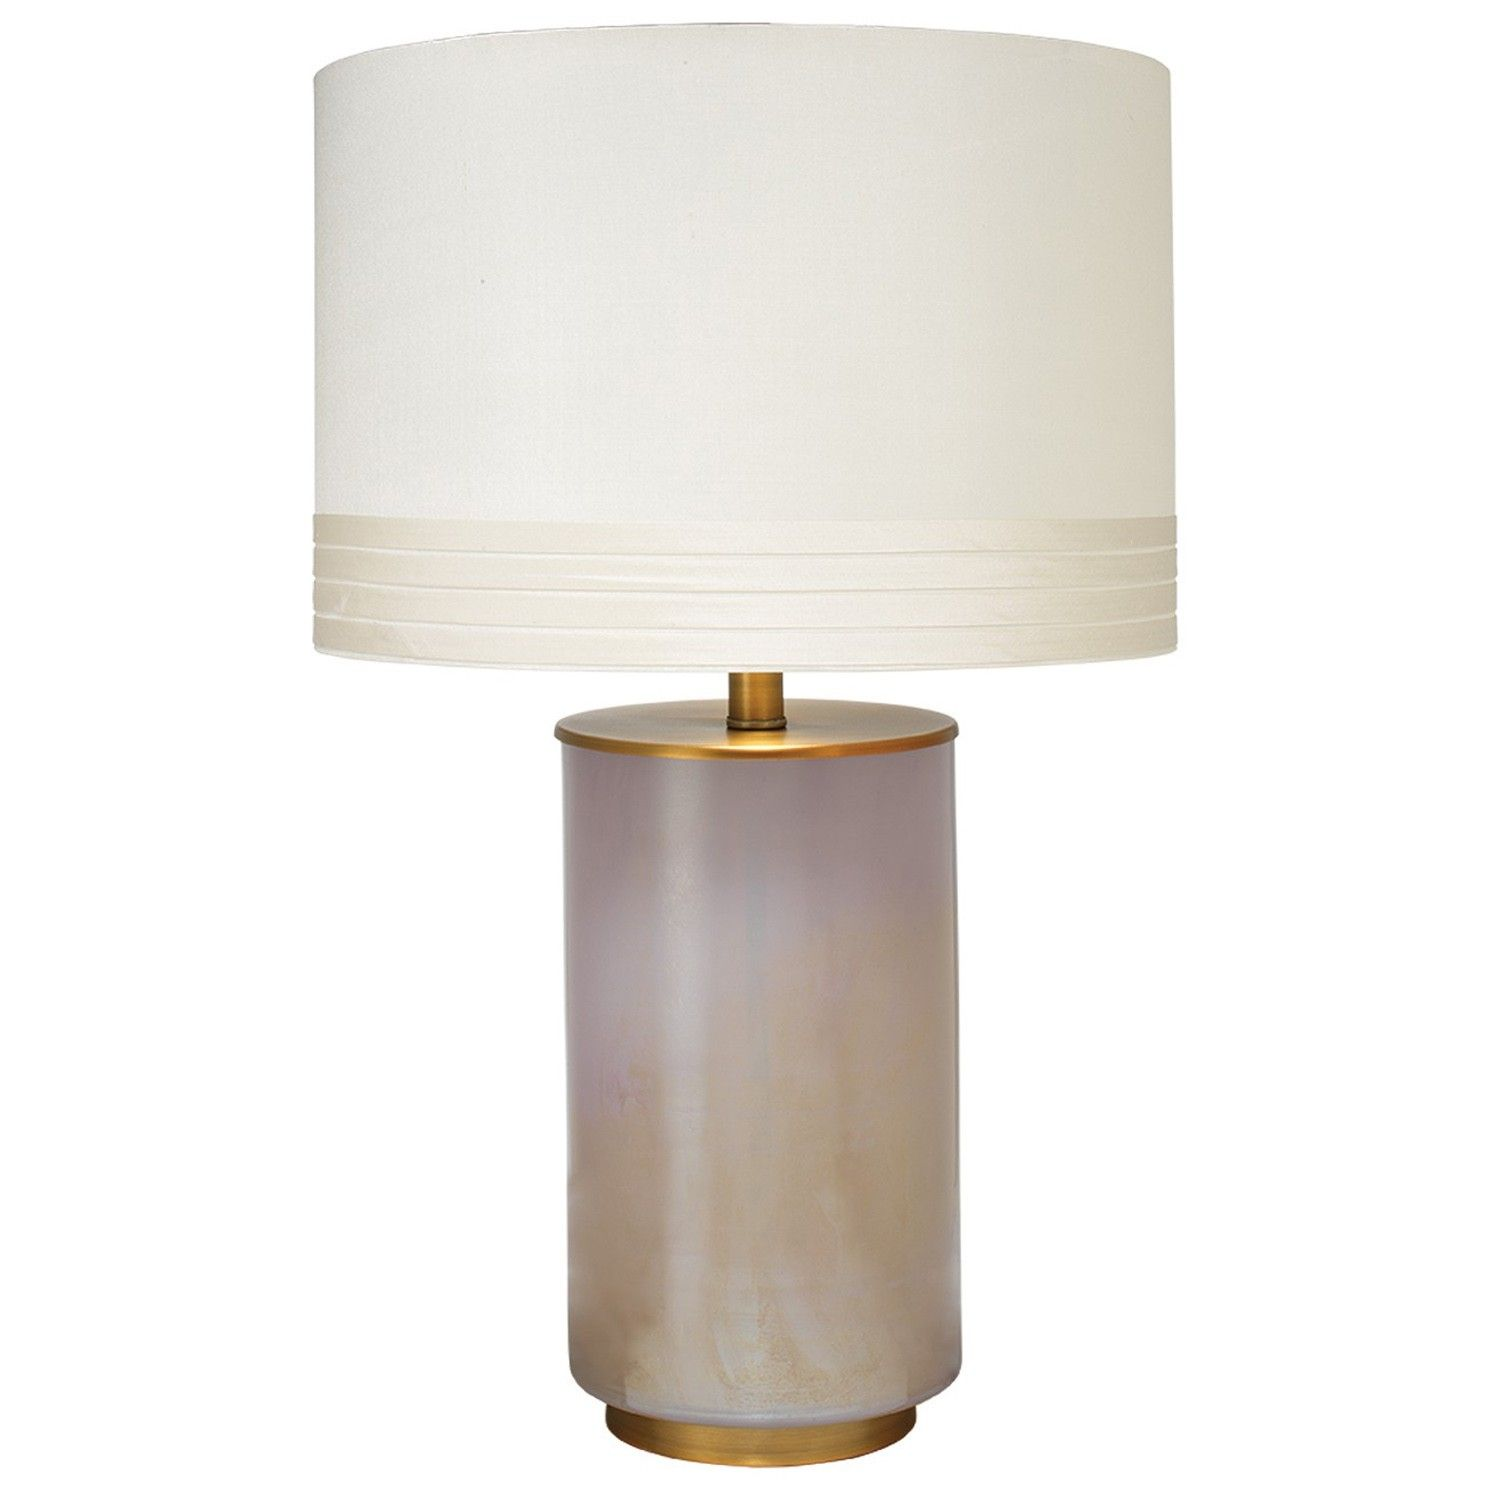 Jamie young co vapor table lamp pink ombre eclectic design the vapor table lamp is part of the jamie young collection this collection is full of wonderful eclectic designs that have been developed using inspiration mozeypictures Image collections